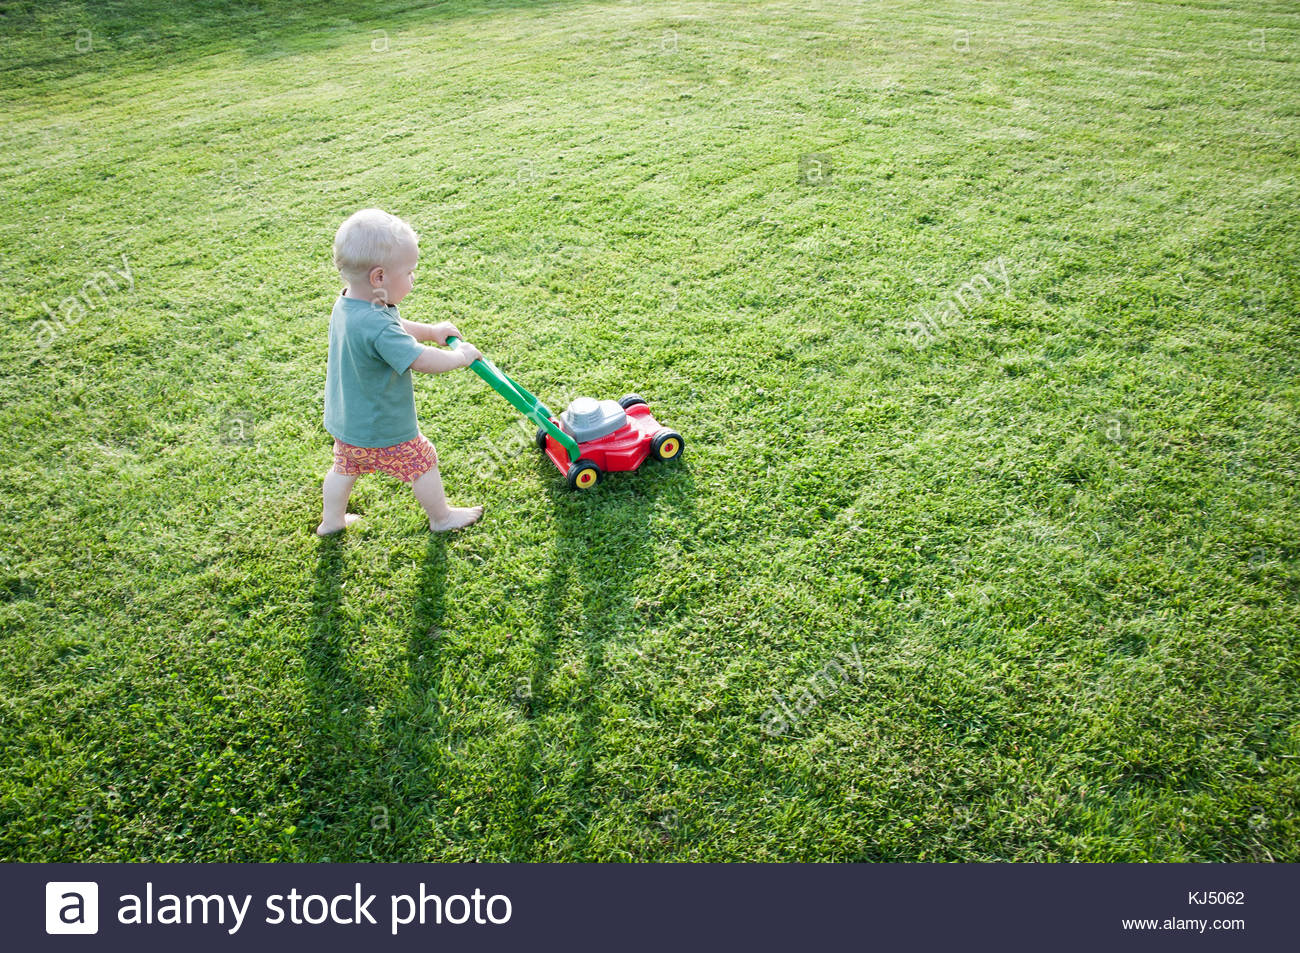 Baby boy with lawn mower - Stock Image